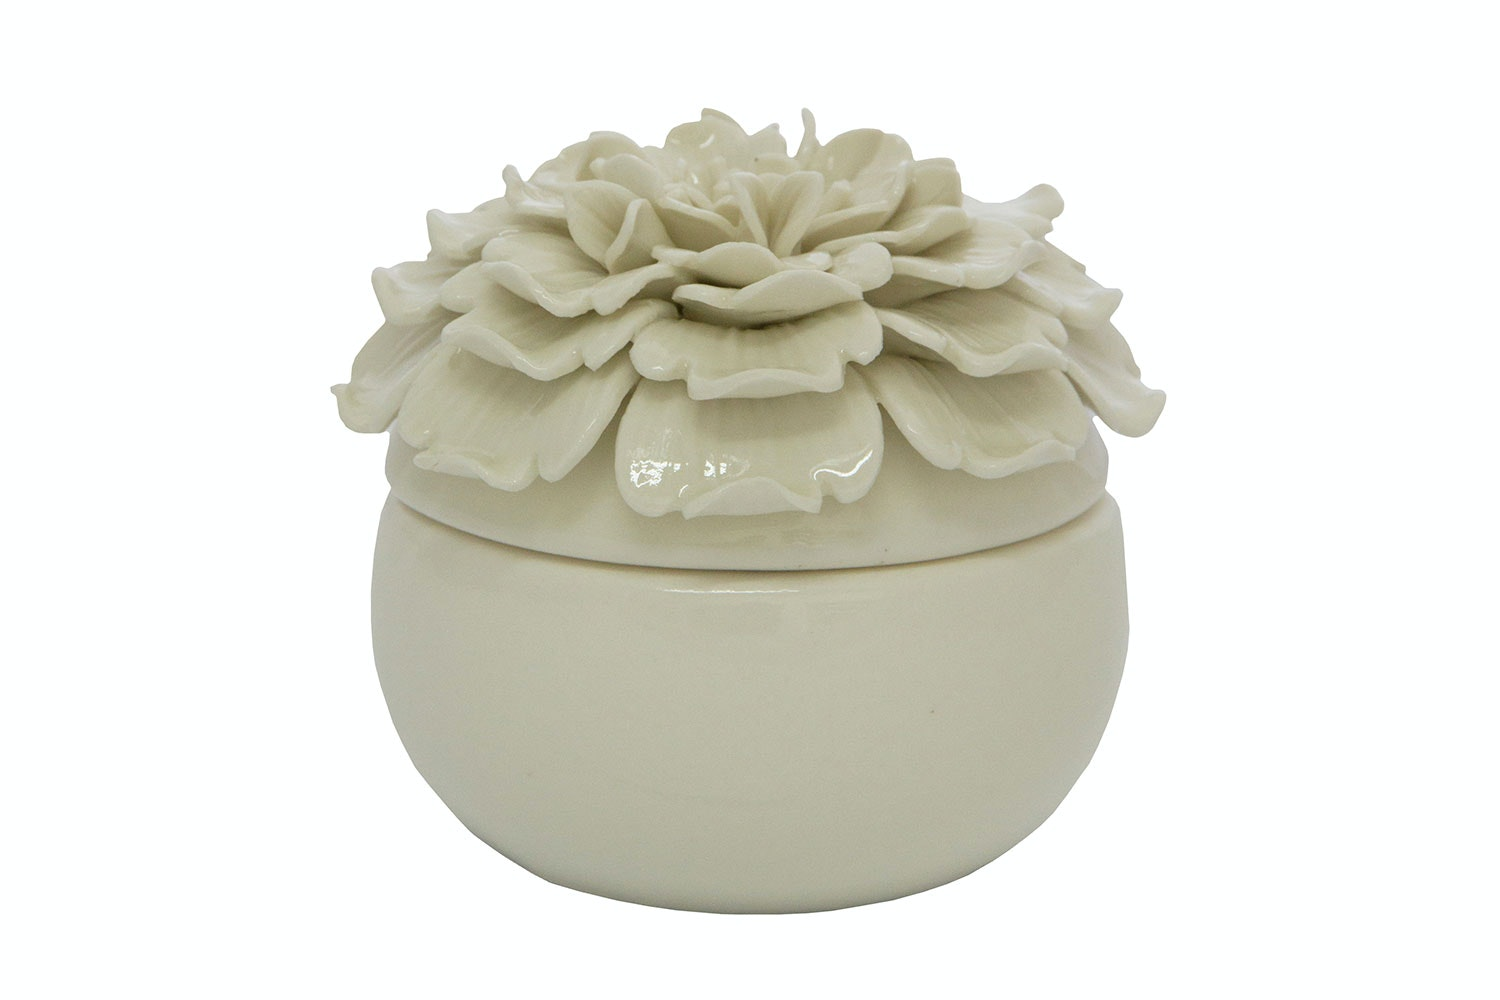 Chrysanthemum Trinket Holder by Kerridge